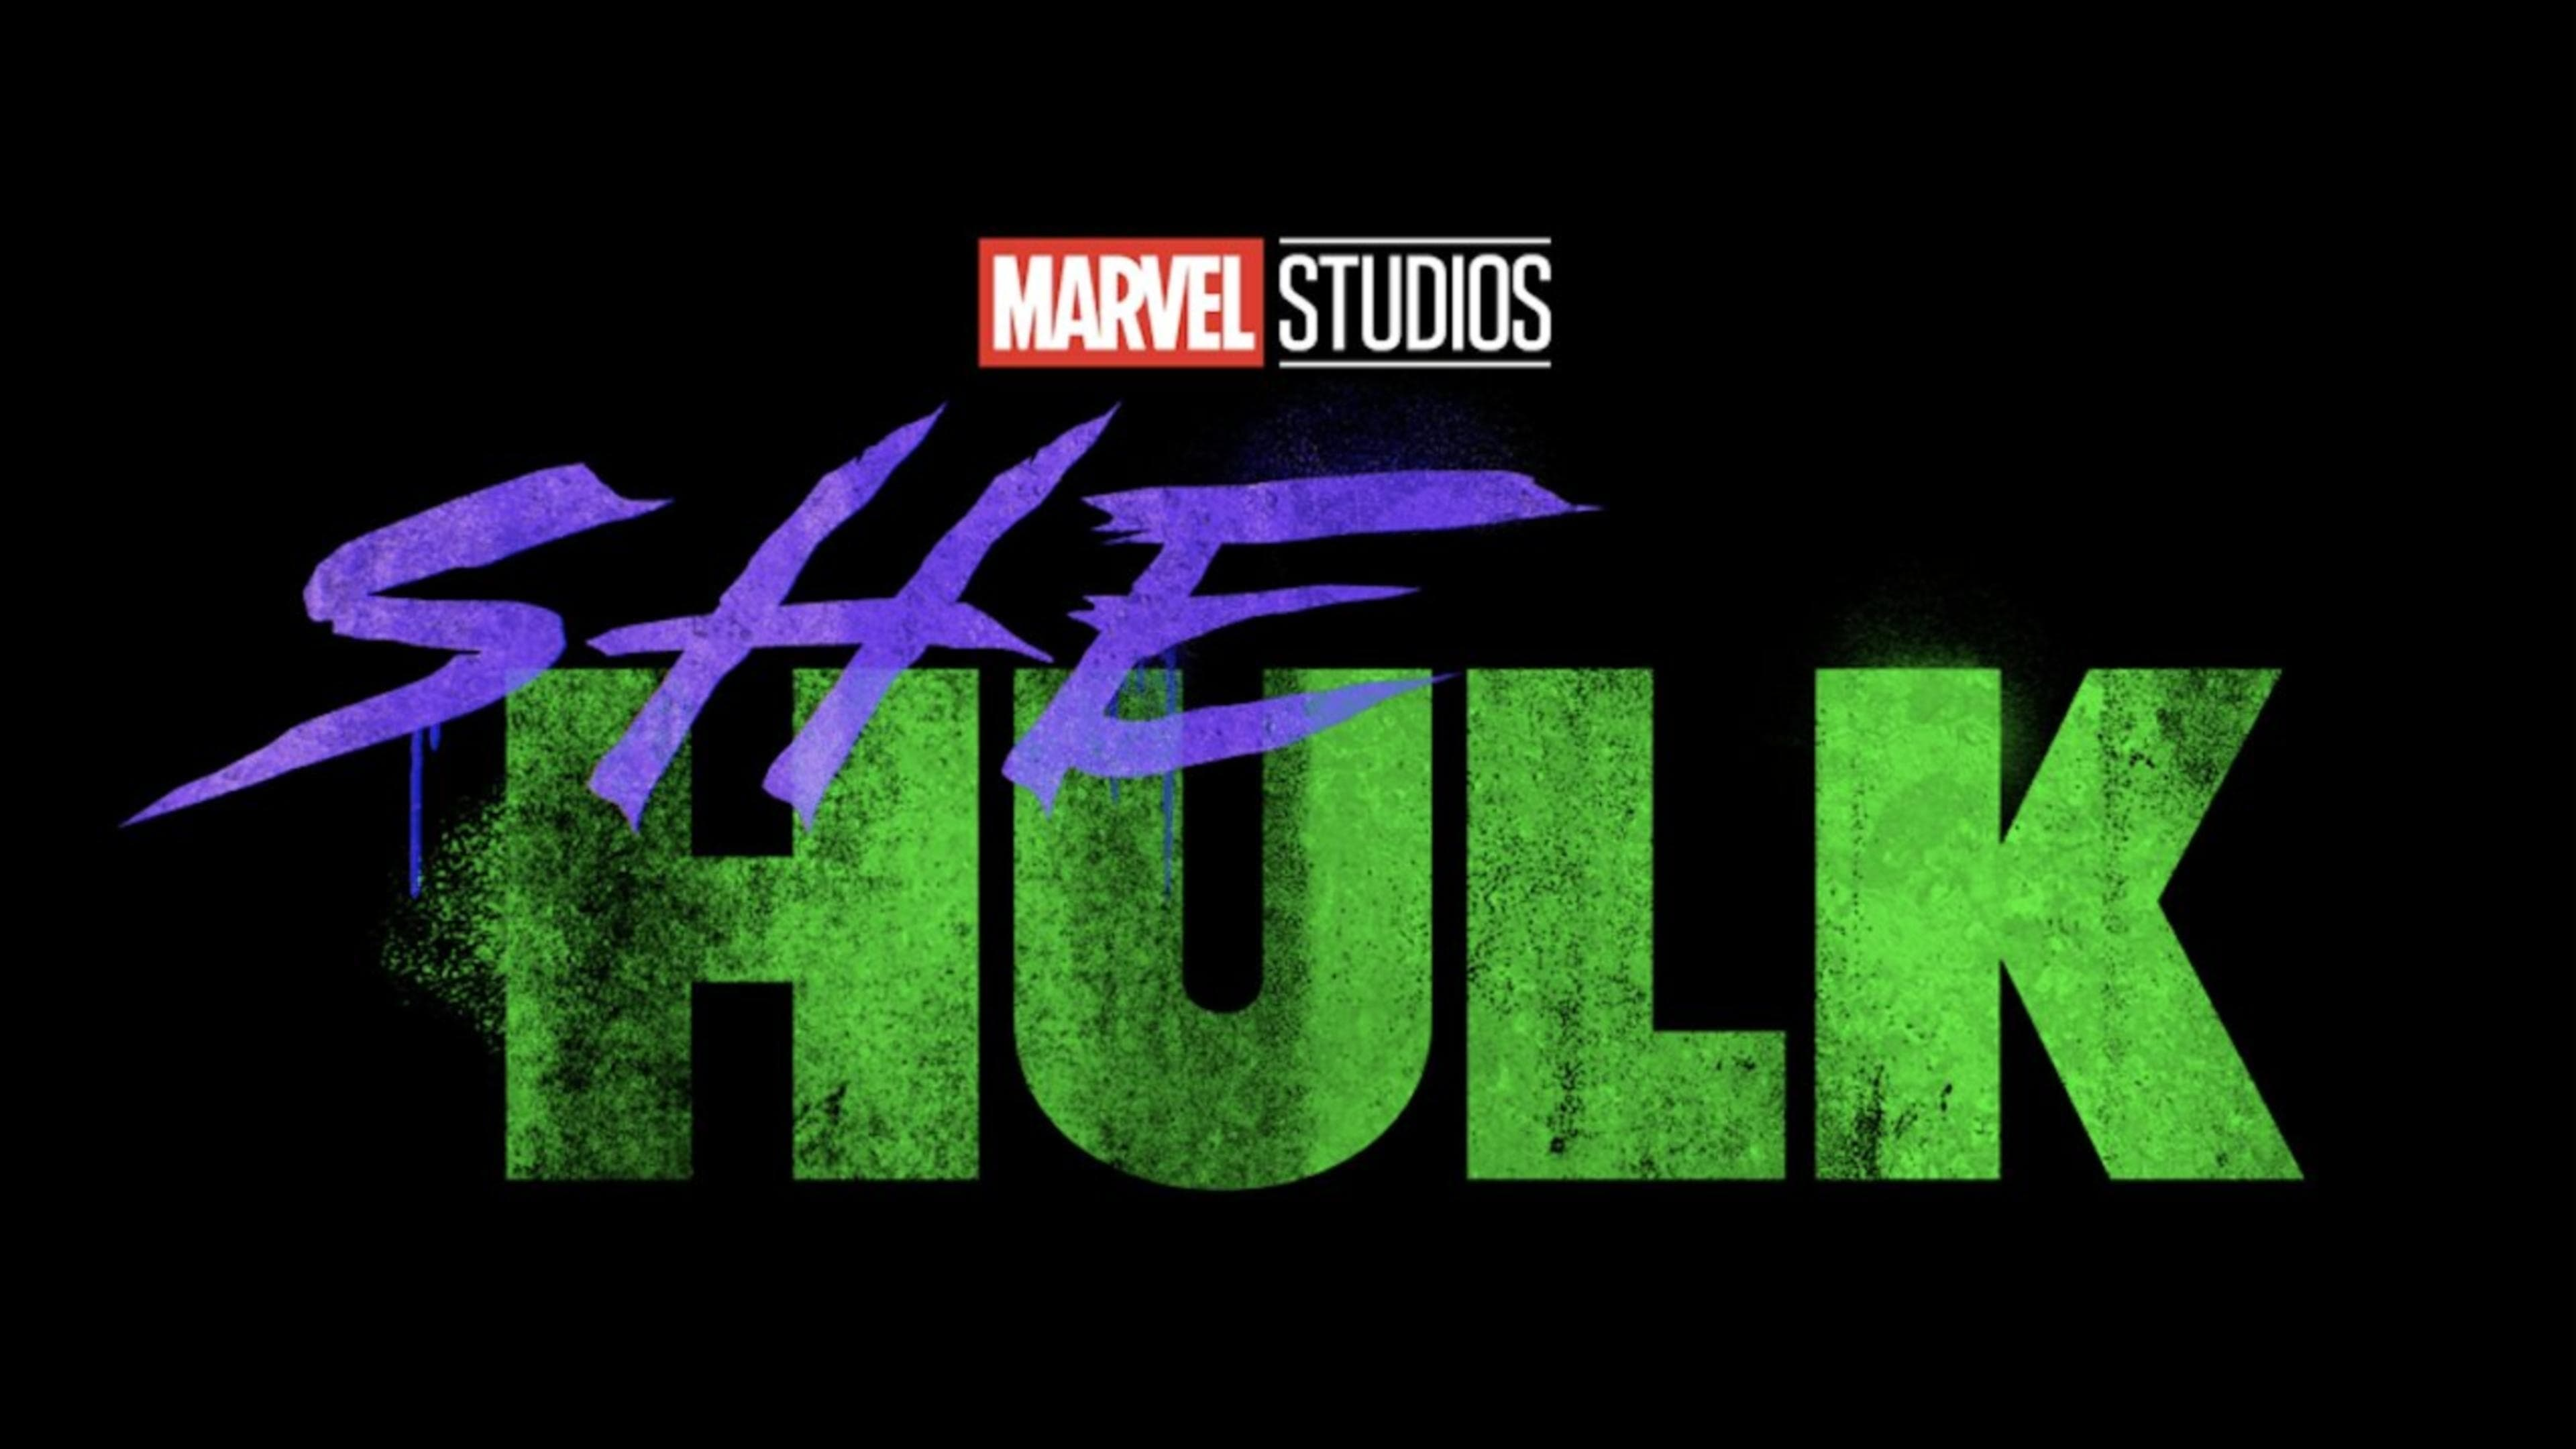 Lead role for Orphan Black actress Tatiana Maslany in Marvel's She-Hulk